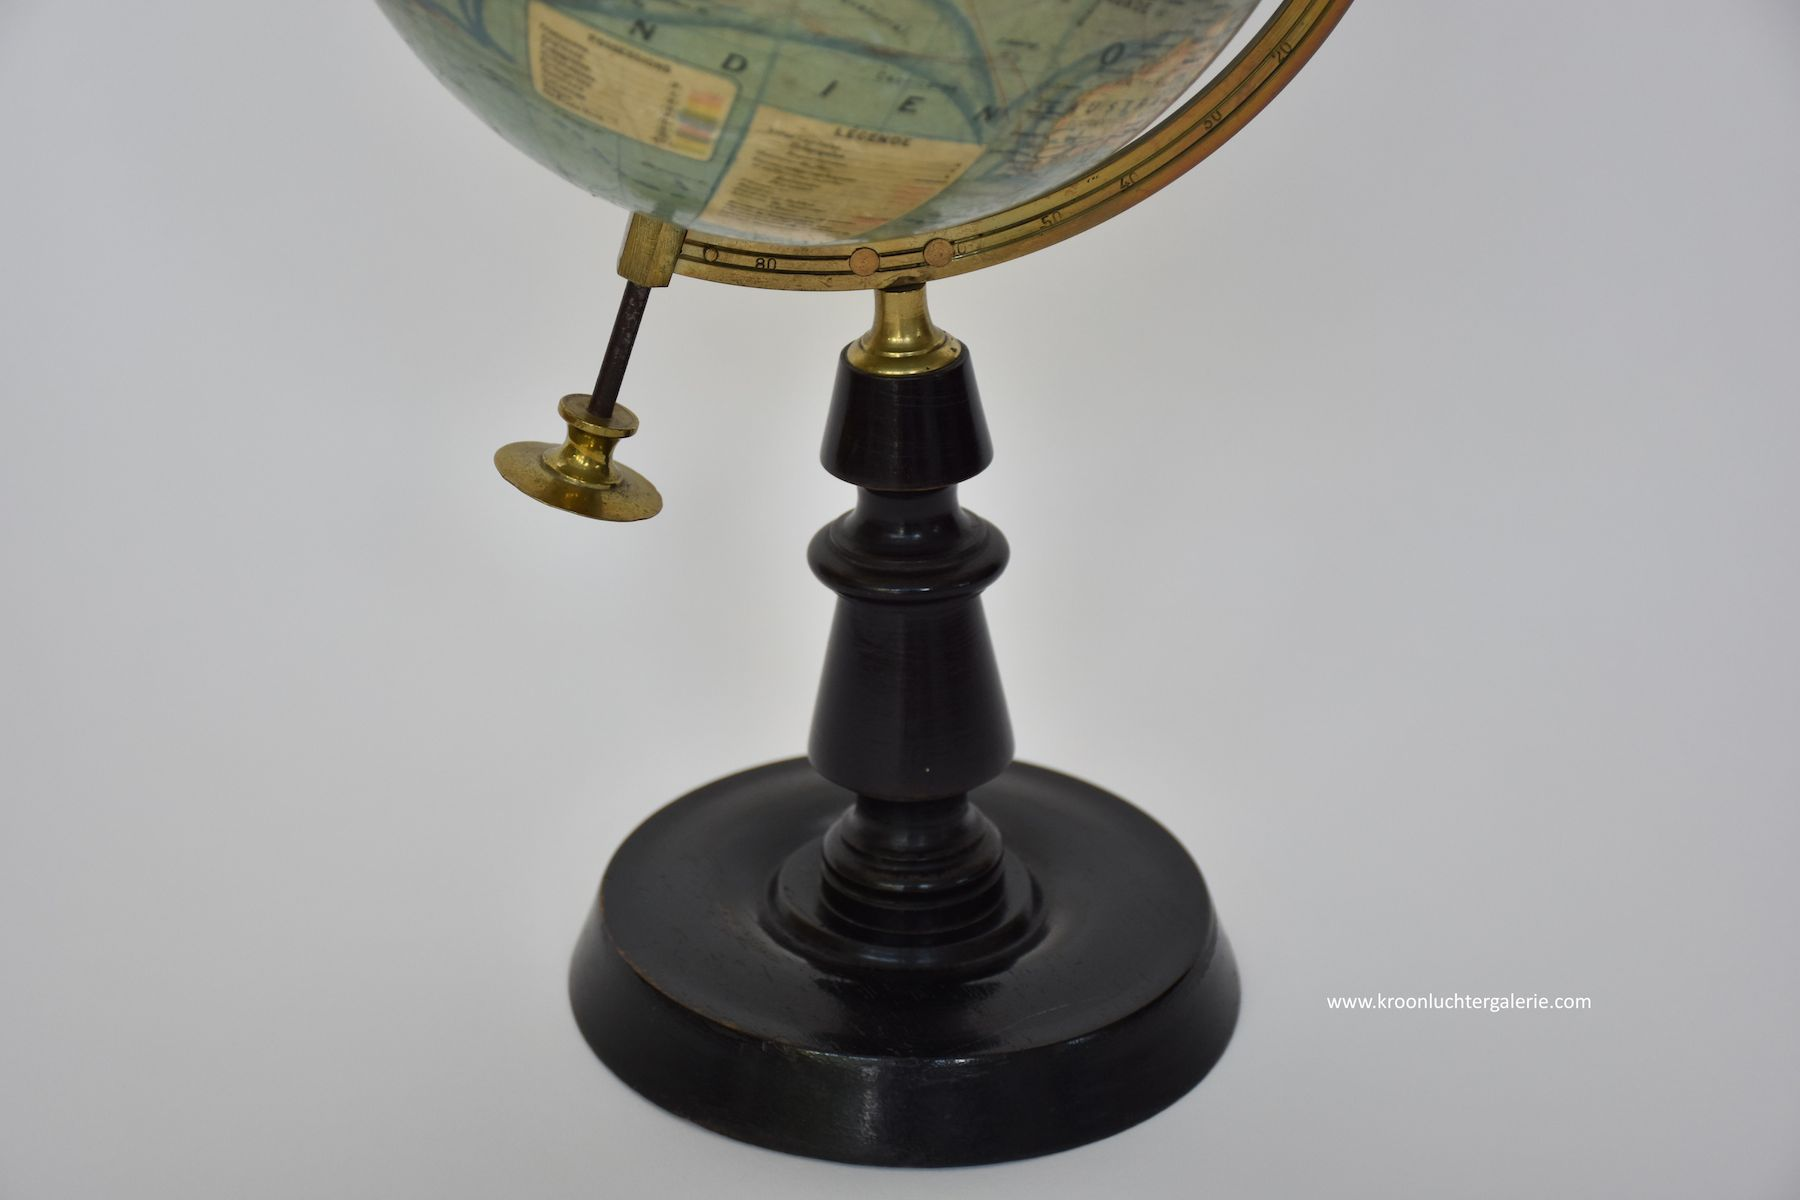 J. Forest Paris antique earth globe/ table globe